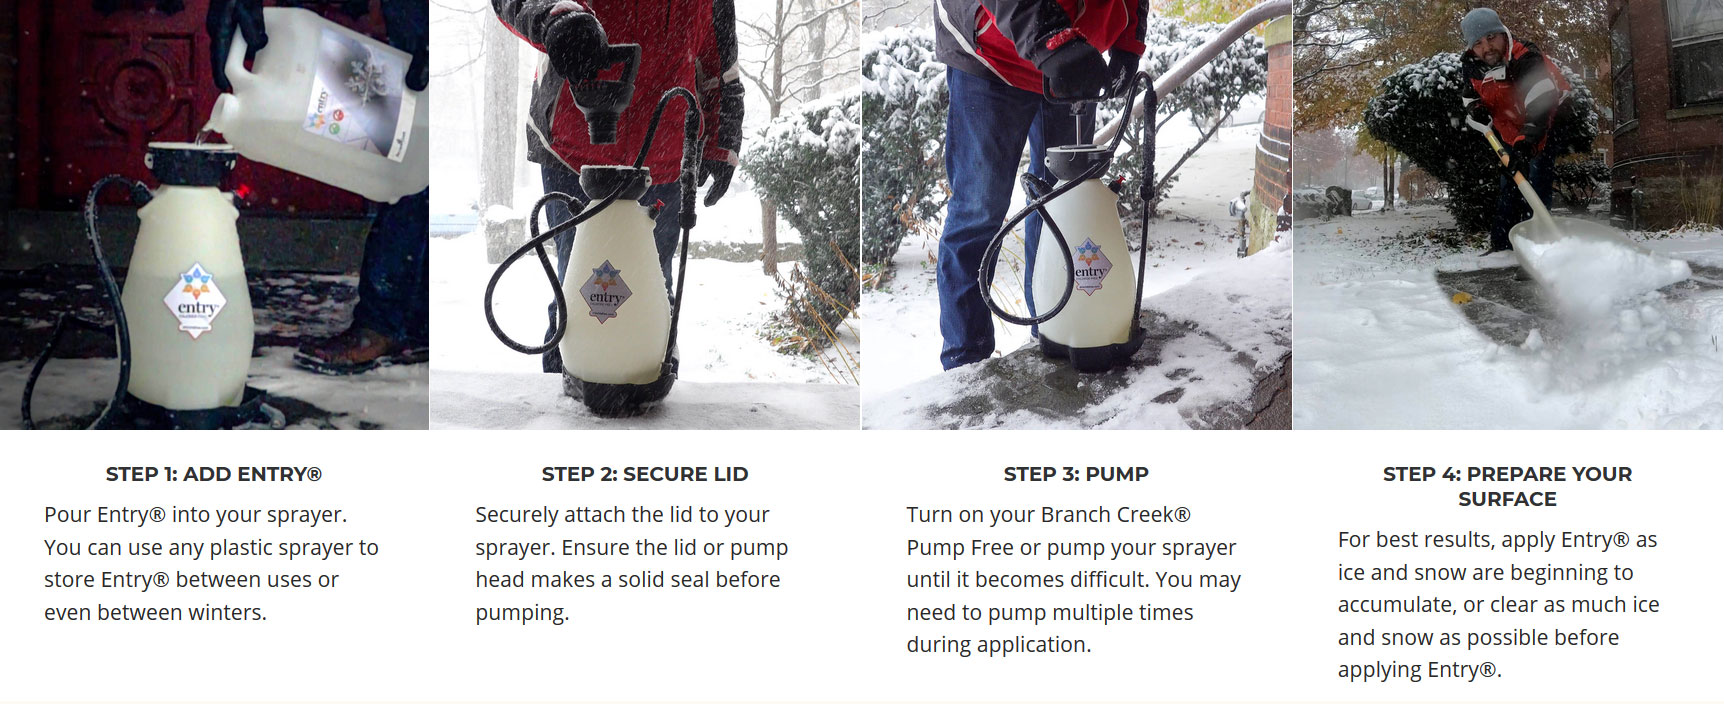 Using Entry Pet Safe Ice Melt - How To